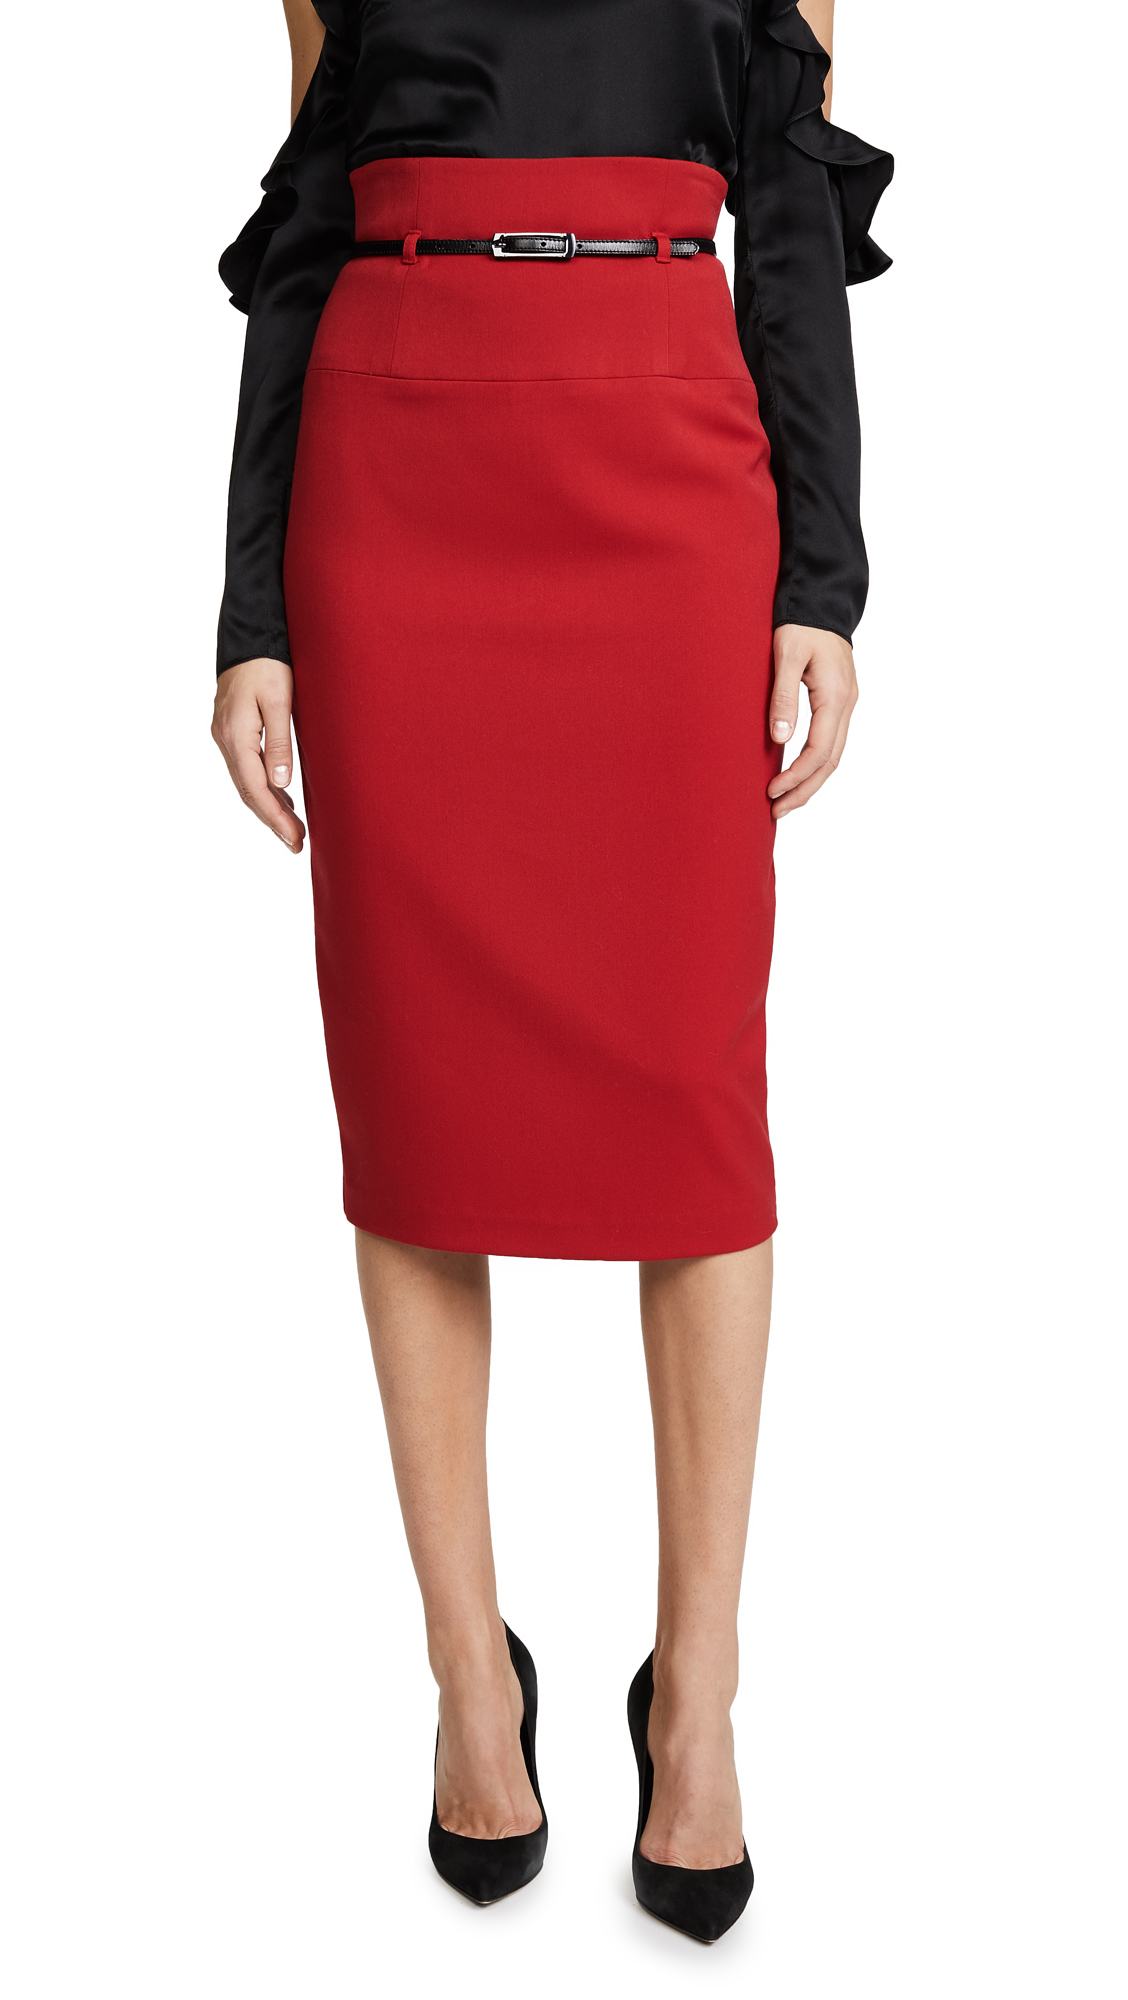 Black Halo High Waisted Pencil Skirt - Red